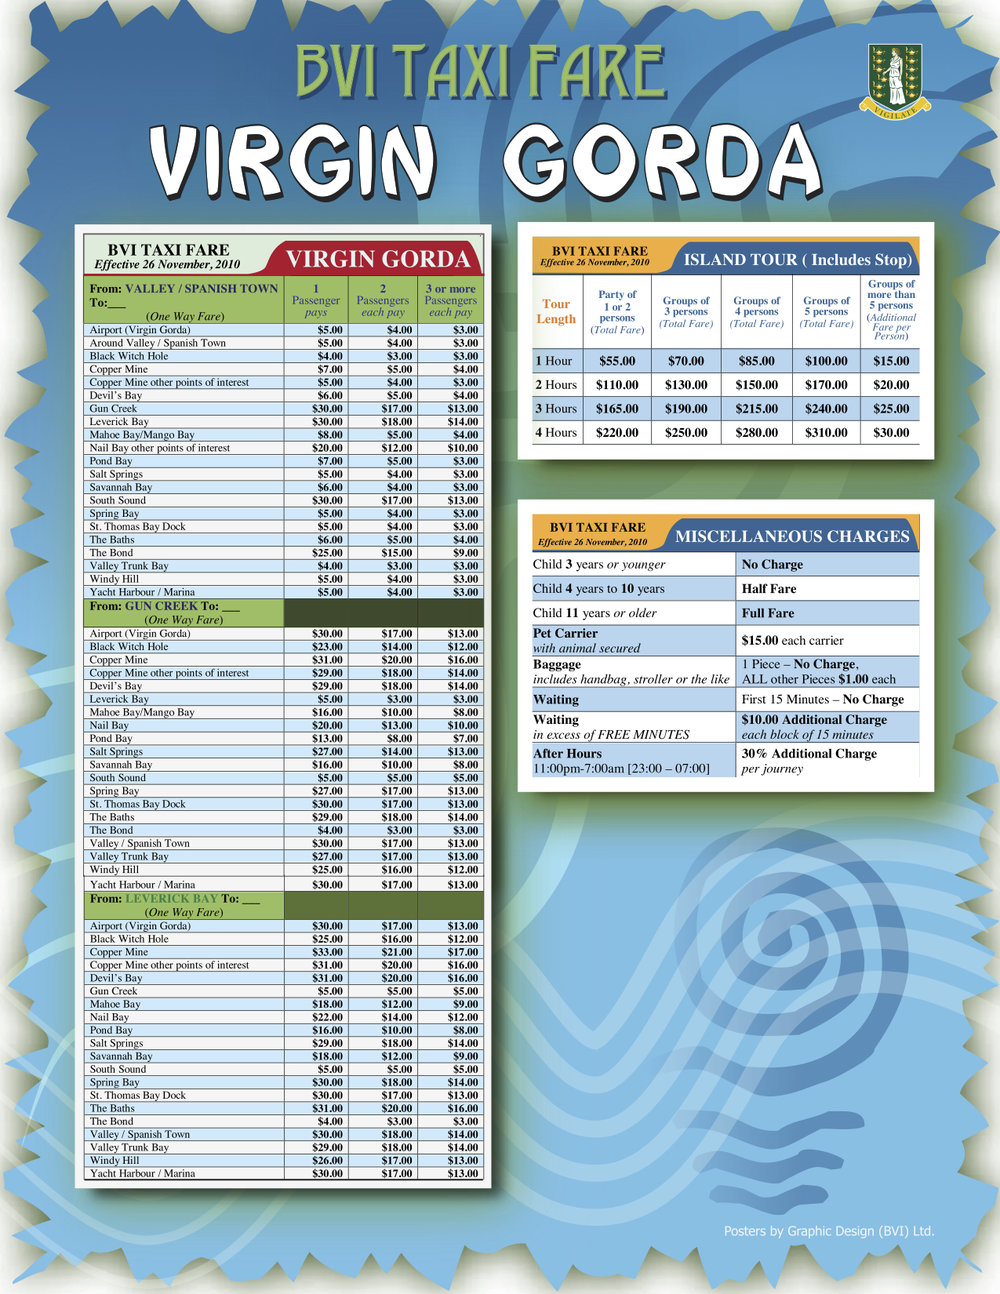 Virgin Gorda Taxi Fares